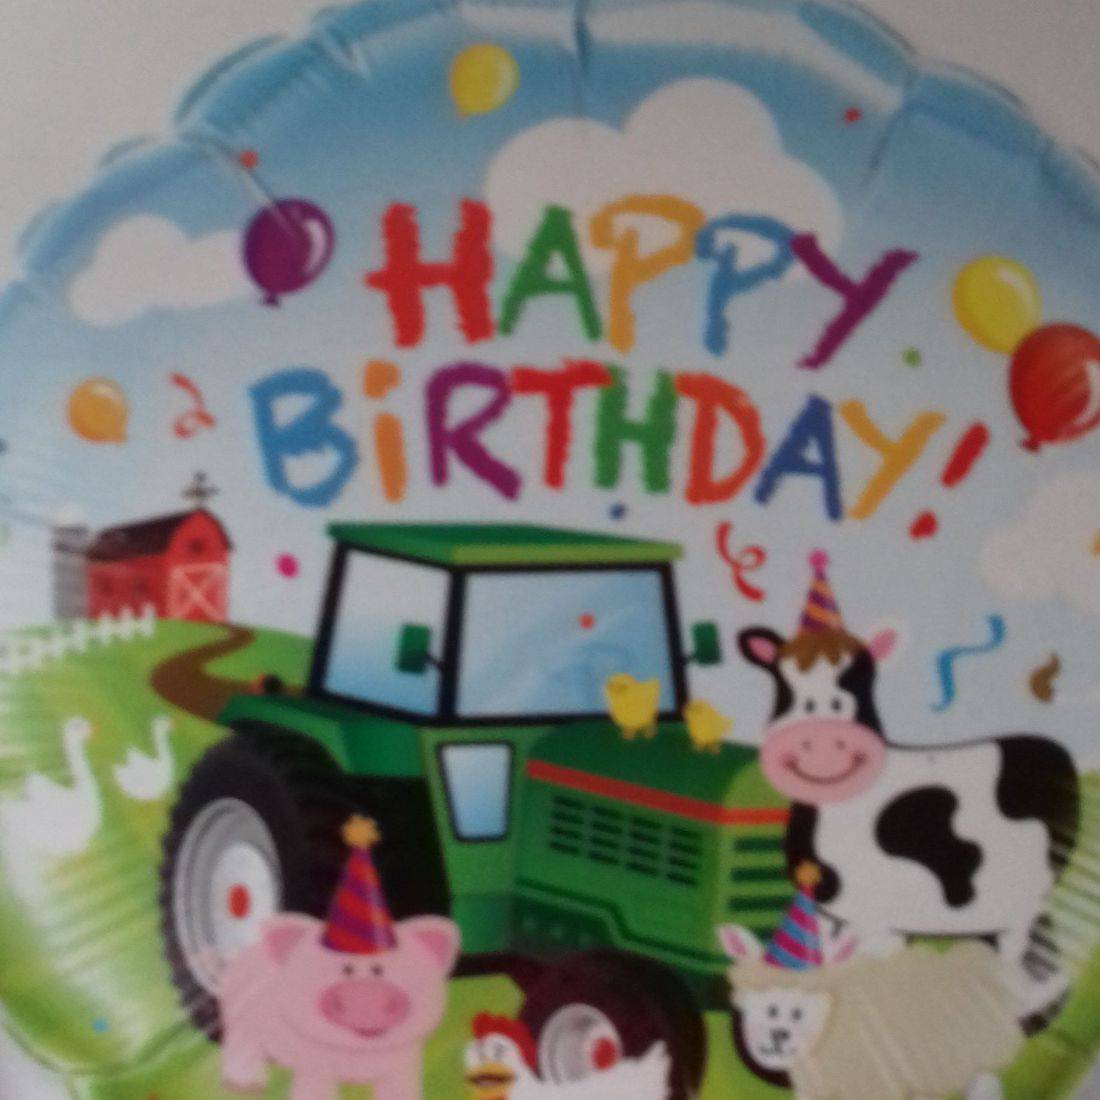 HAPPY BIRTHDAY - farmyard